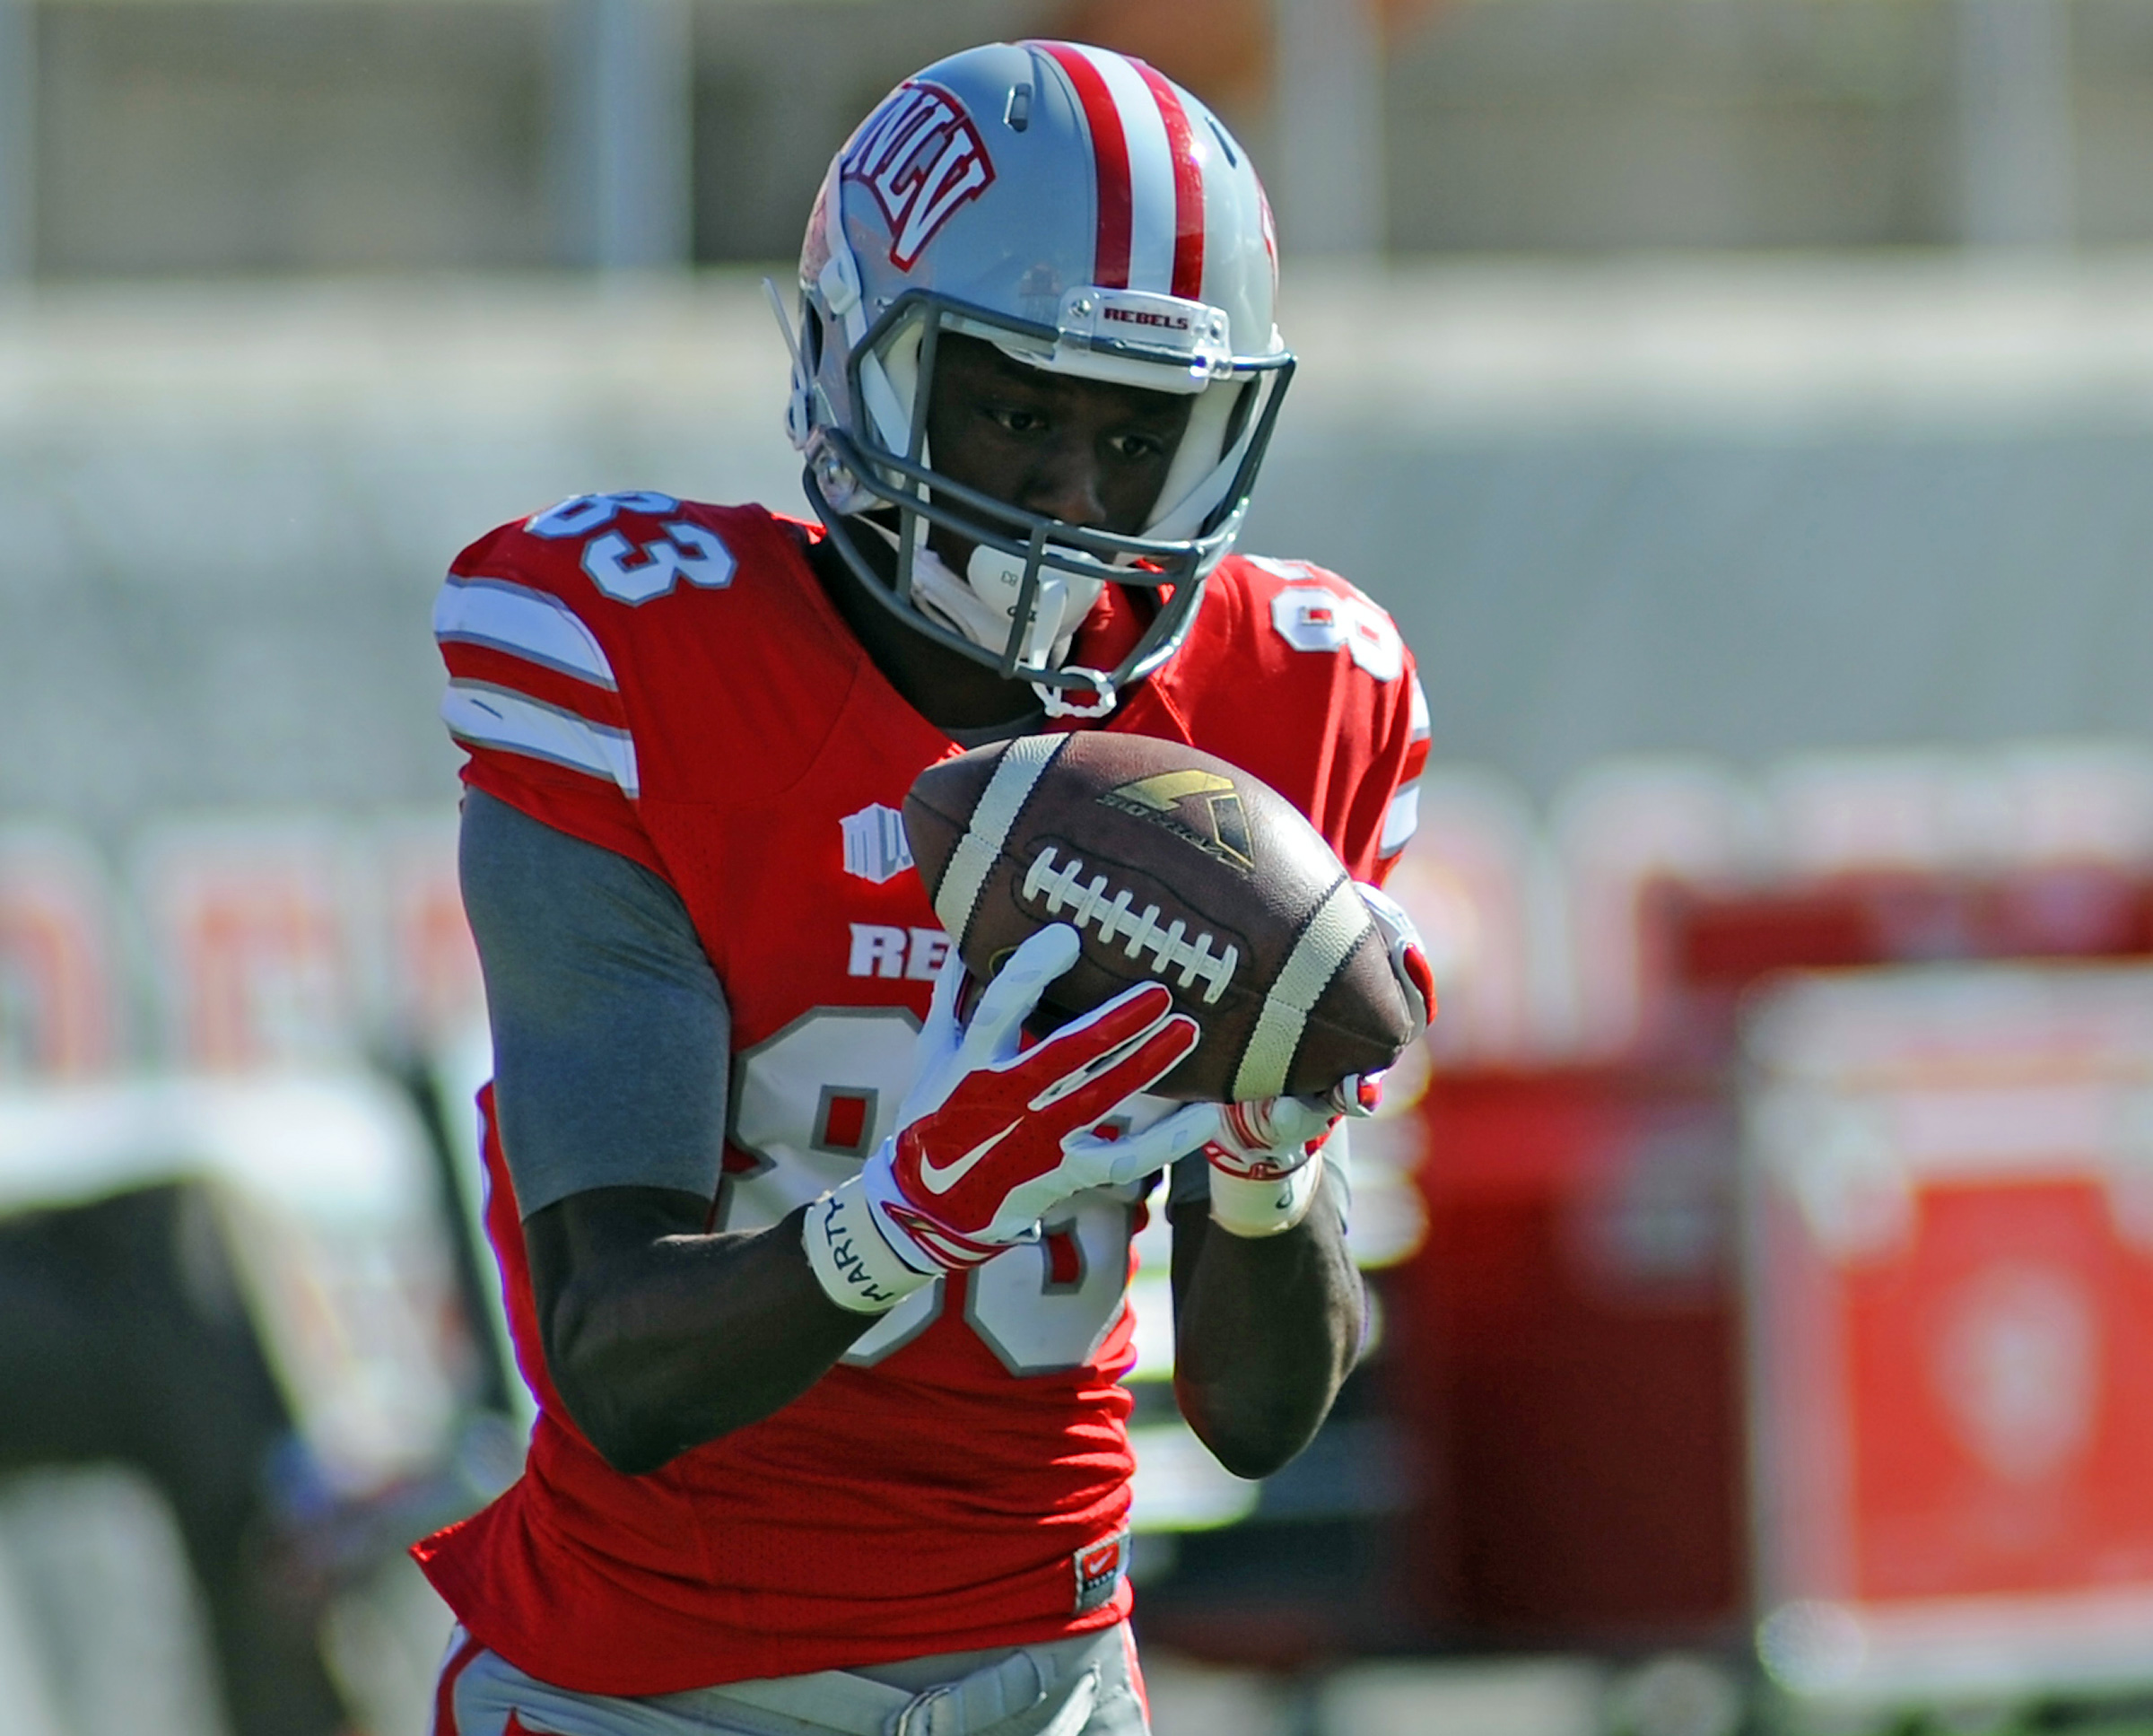 On Saturday, UCLA will try to contain UNLV's big play receiver, sophomore Devonte Boyd.